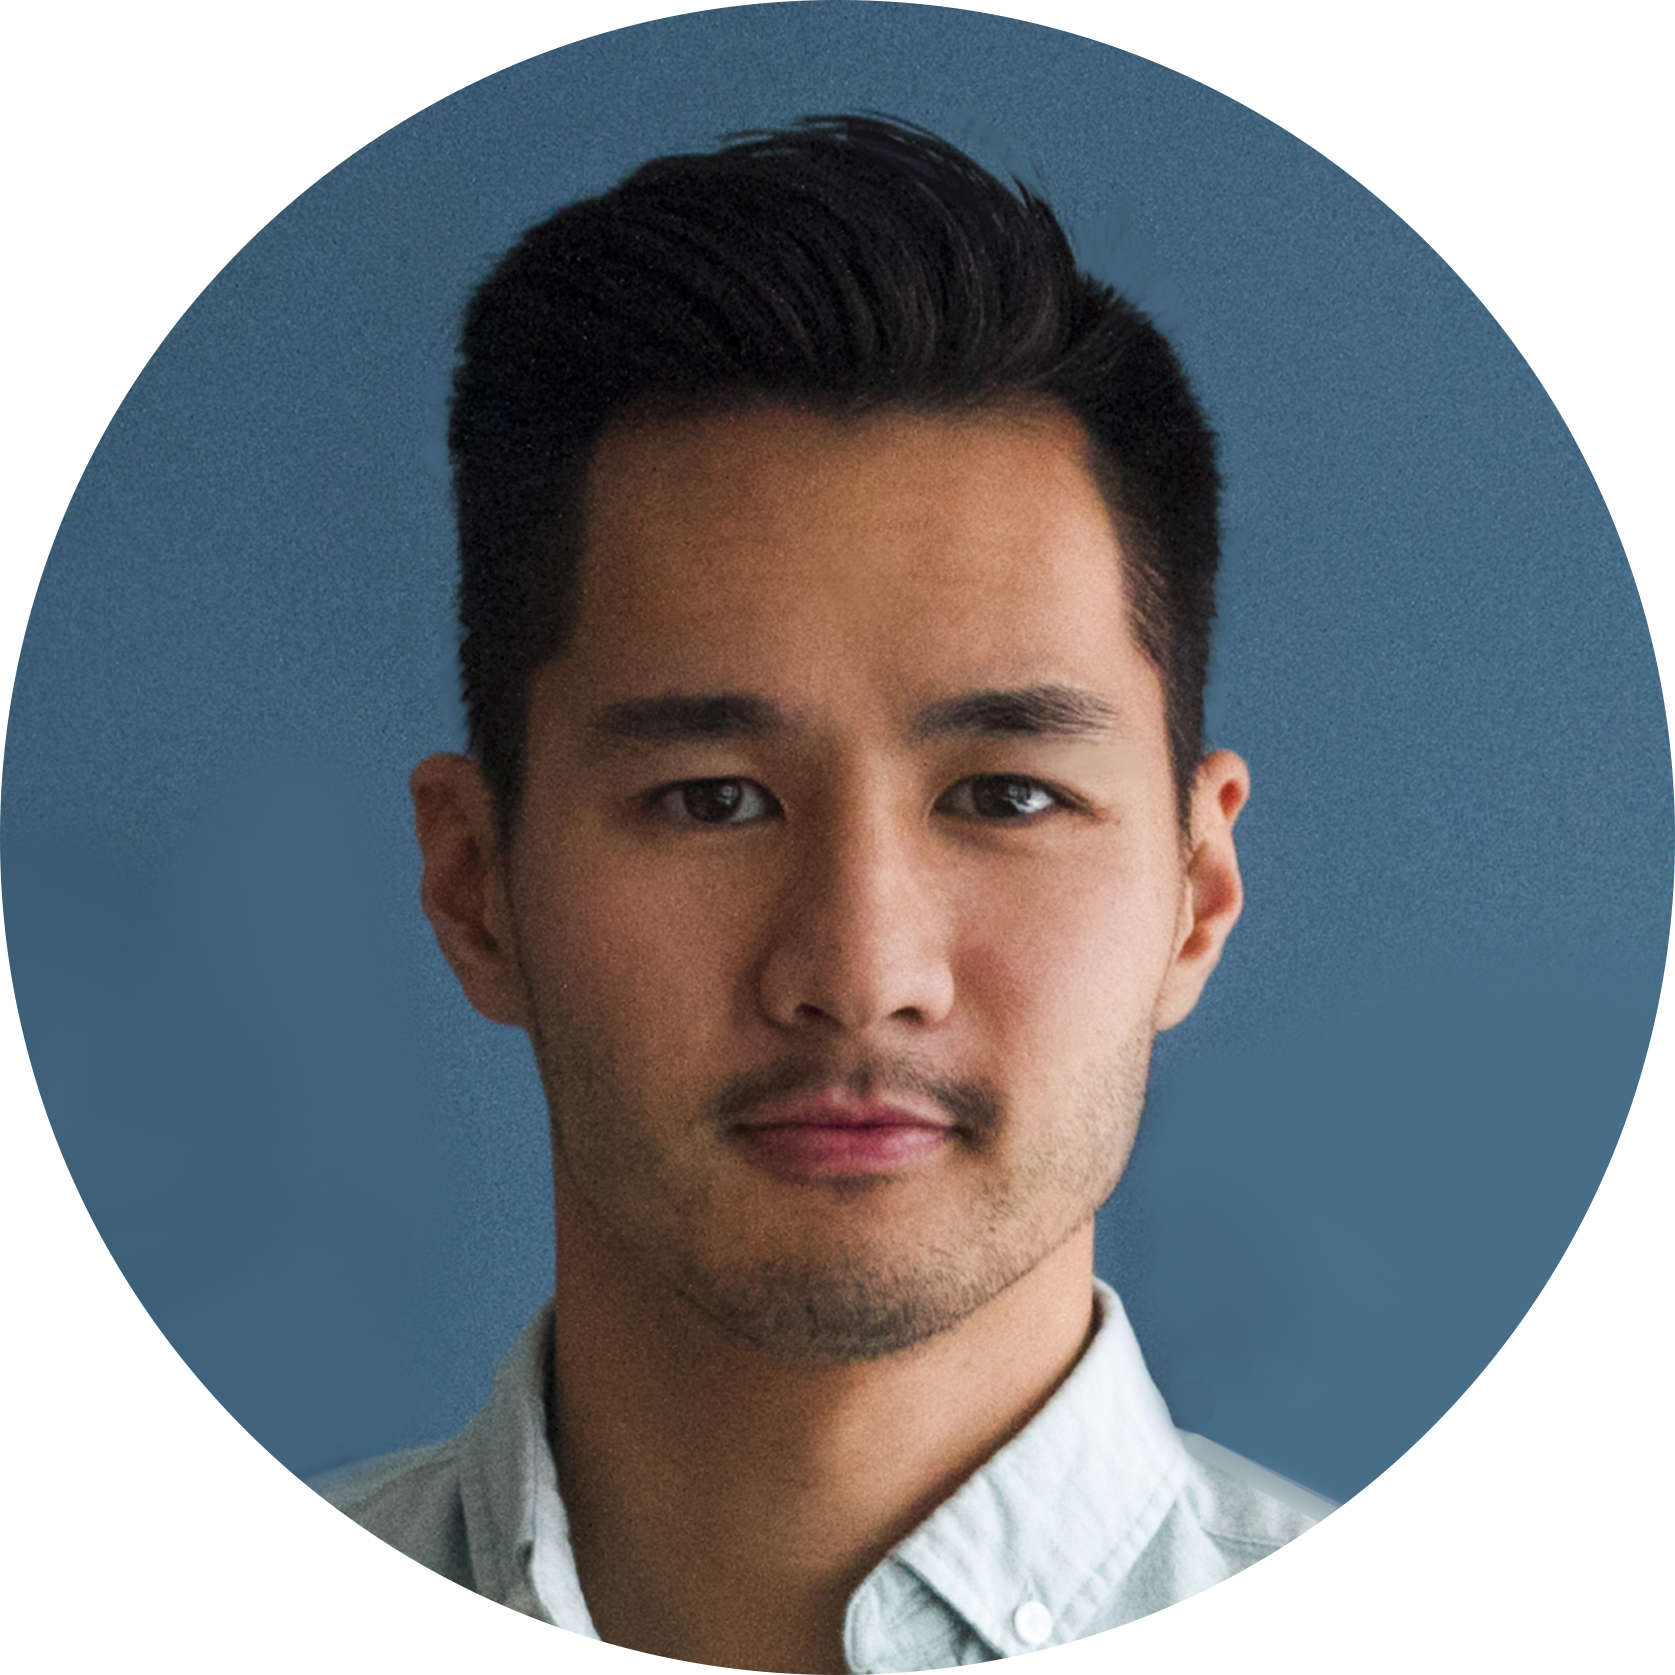 asian male headshot artist